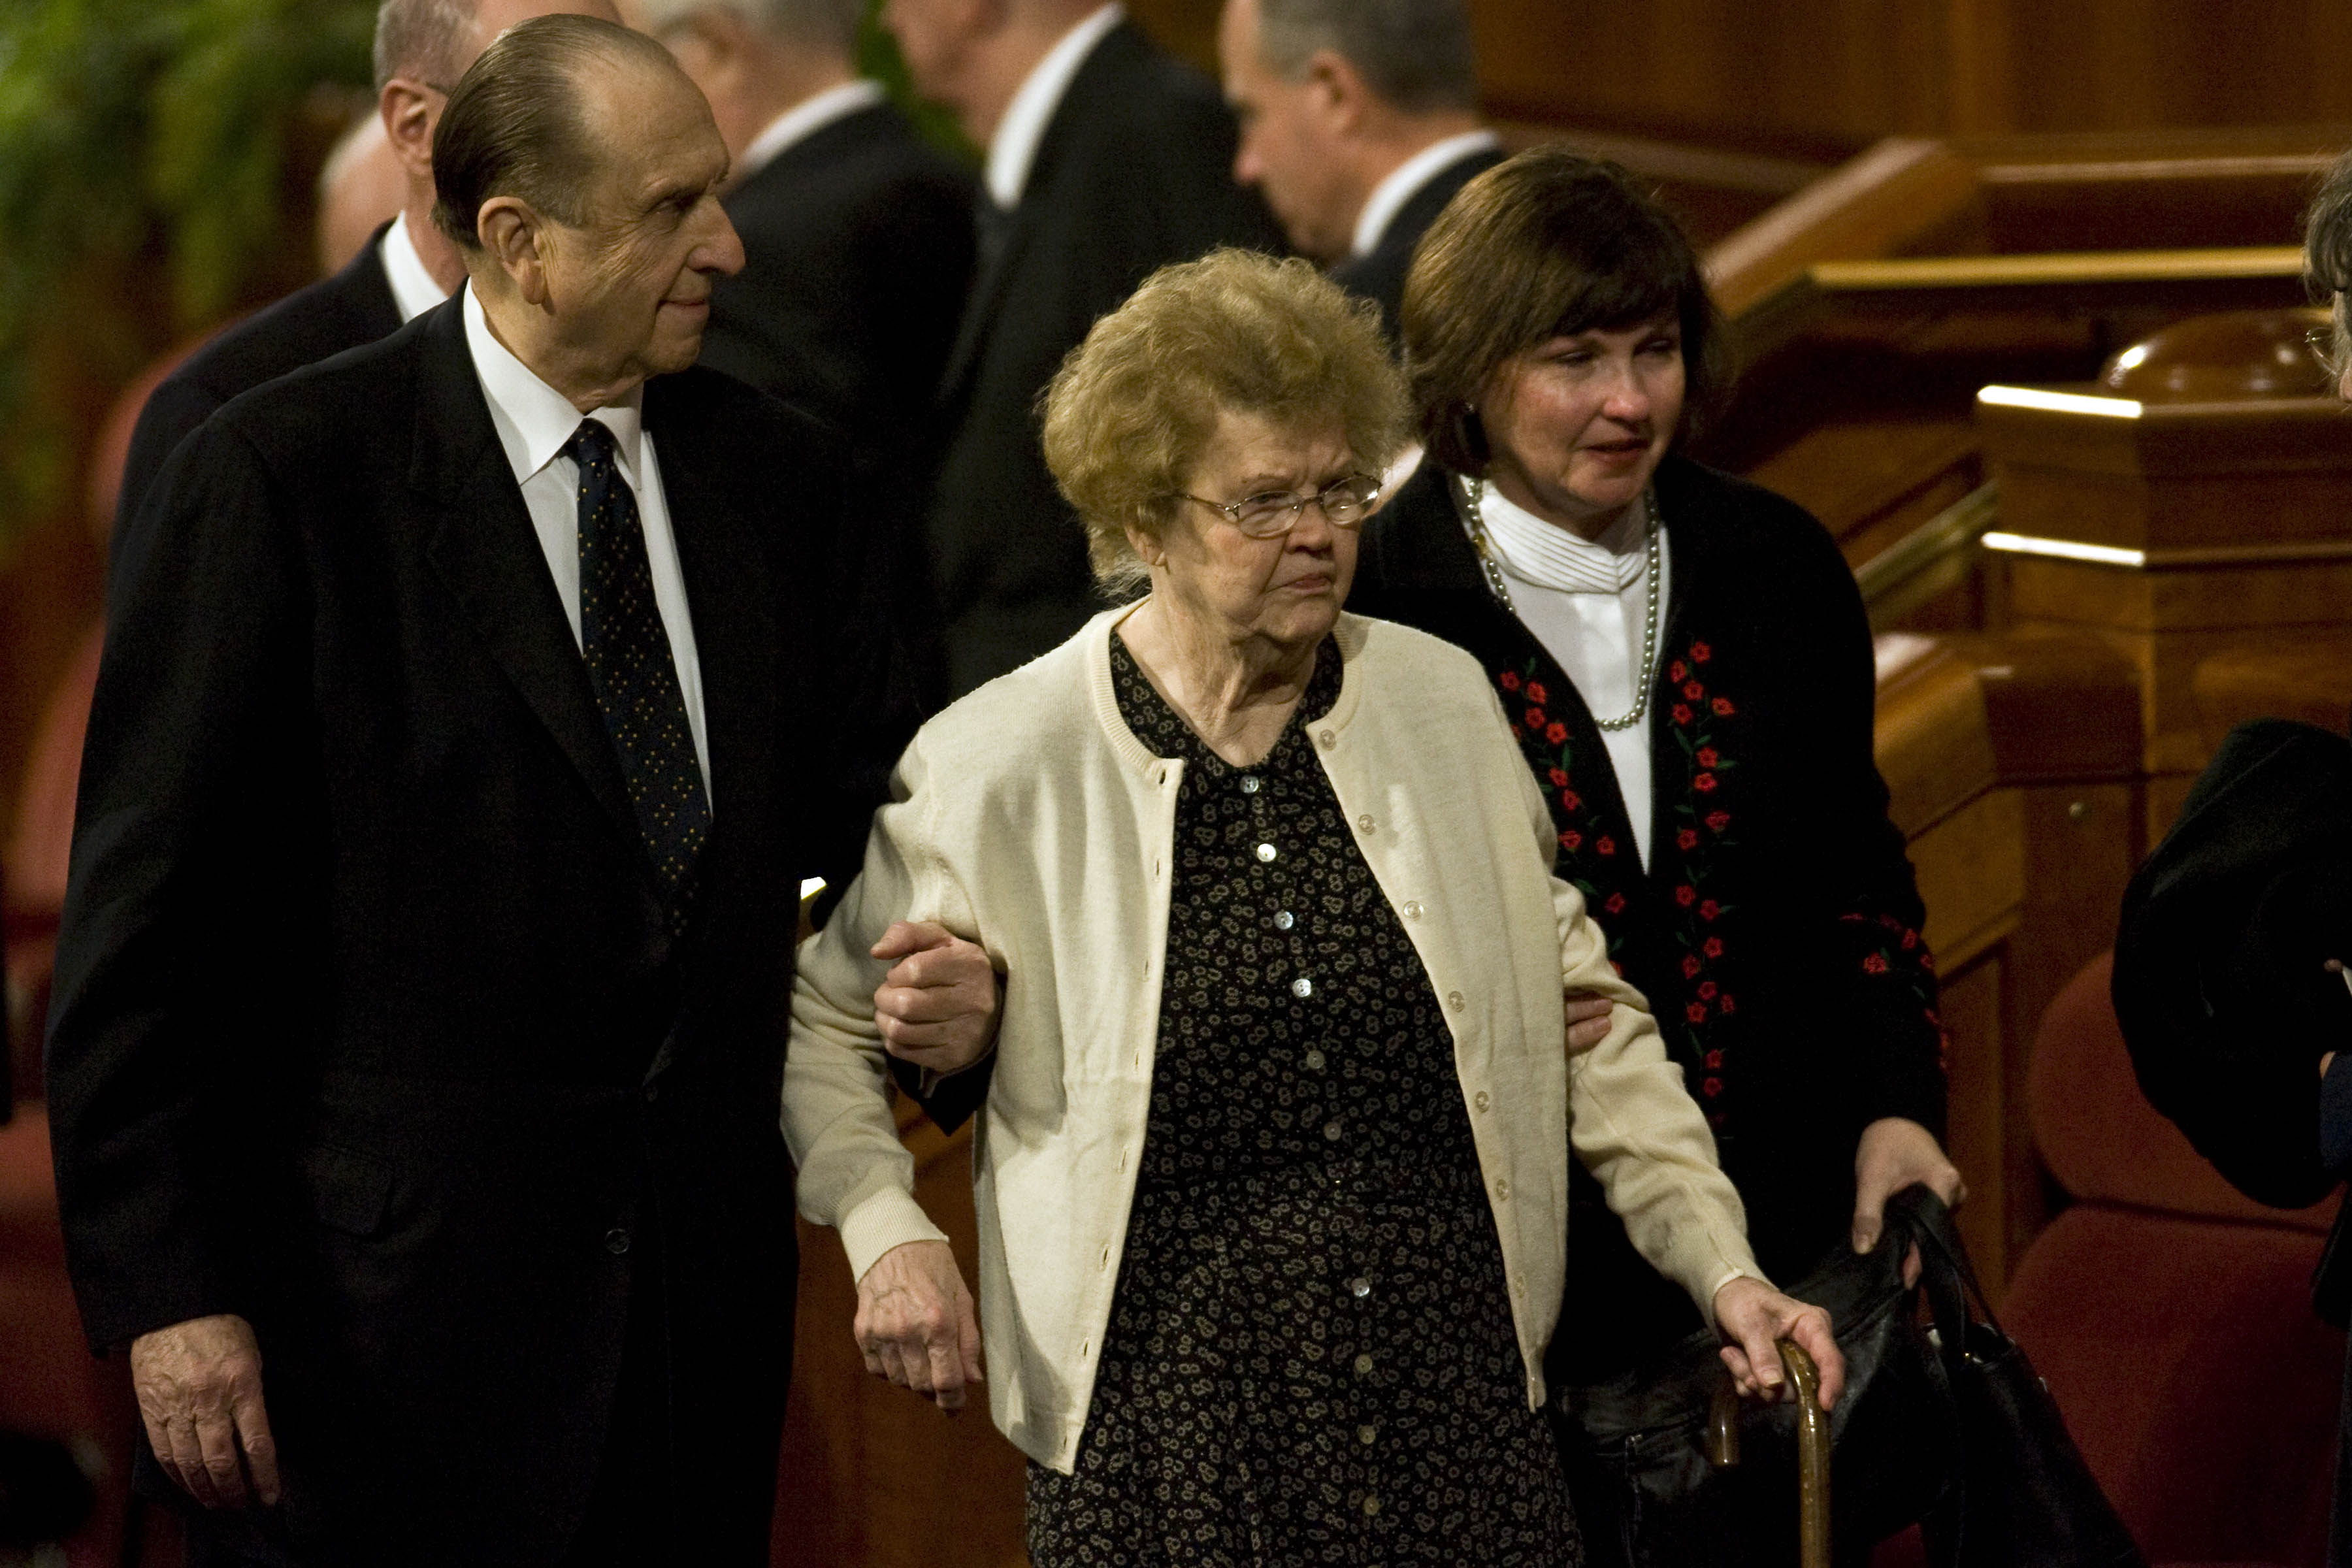 (Chris Detrick  |  The Salt Lake Tribune) President Thomas S. Monson walks out after the funeral services for LDS President Gordon B. Hinckley at the Salt Lake City LDS Conference Center on Feb. 2, 2008.